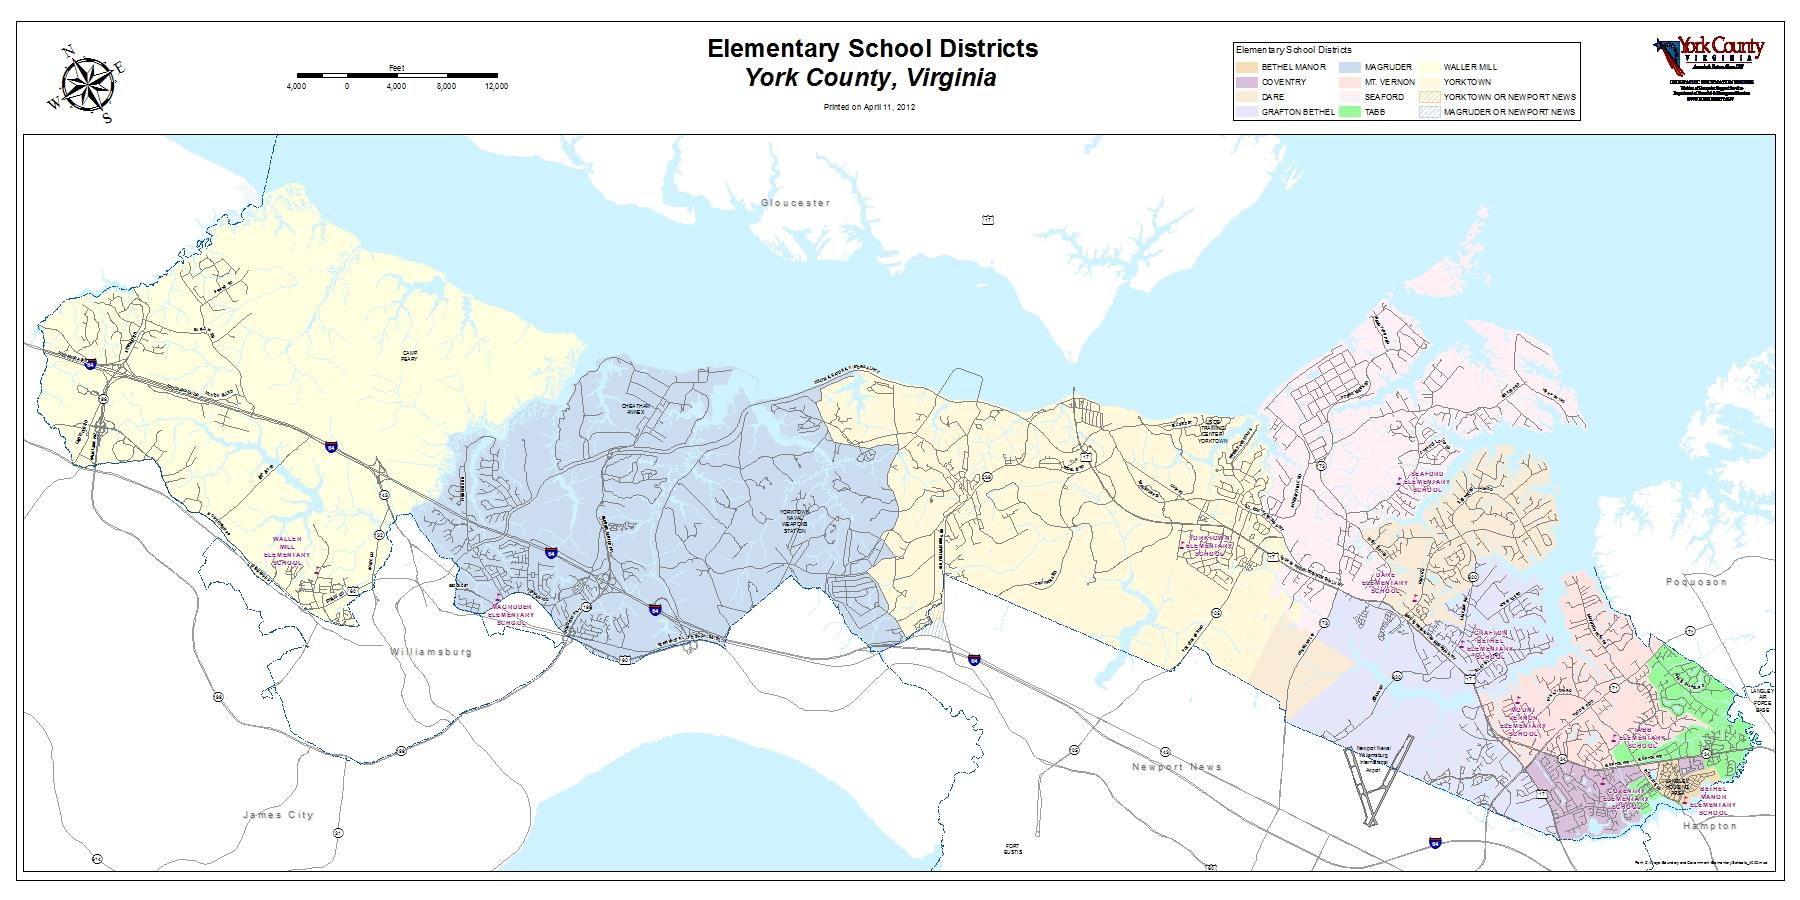 Elementary School Districts - Large